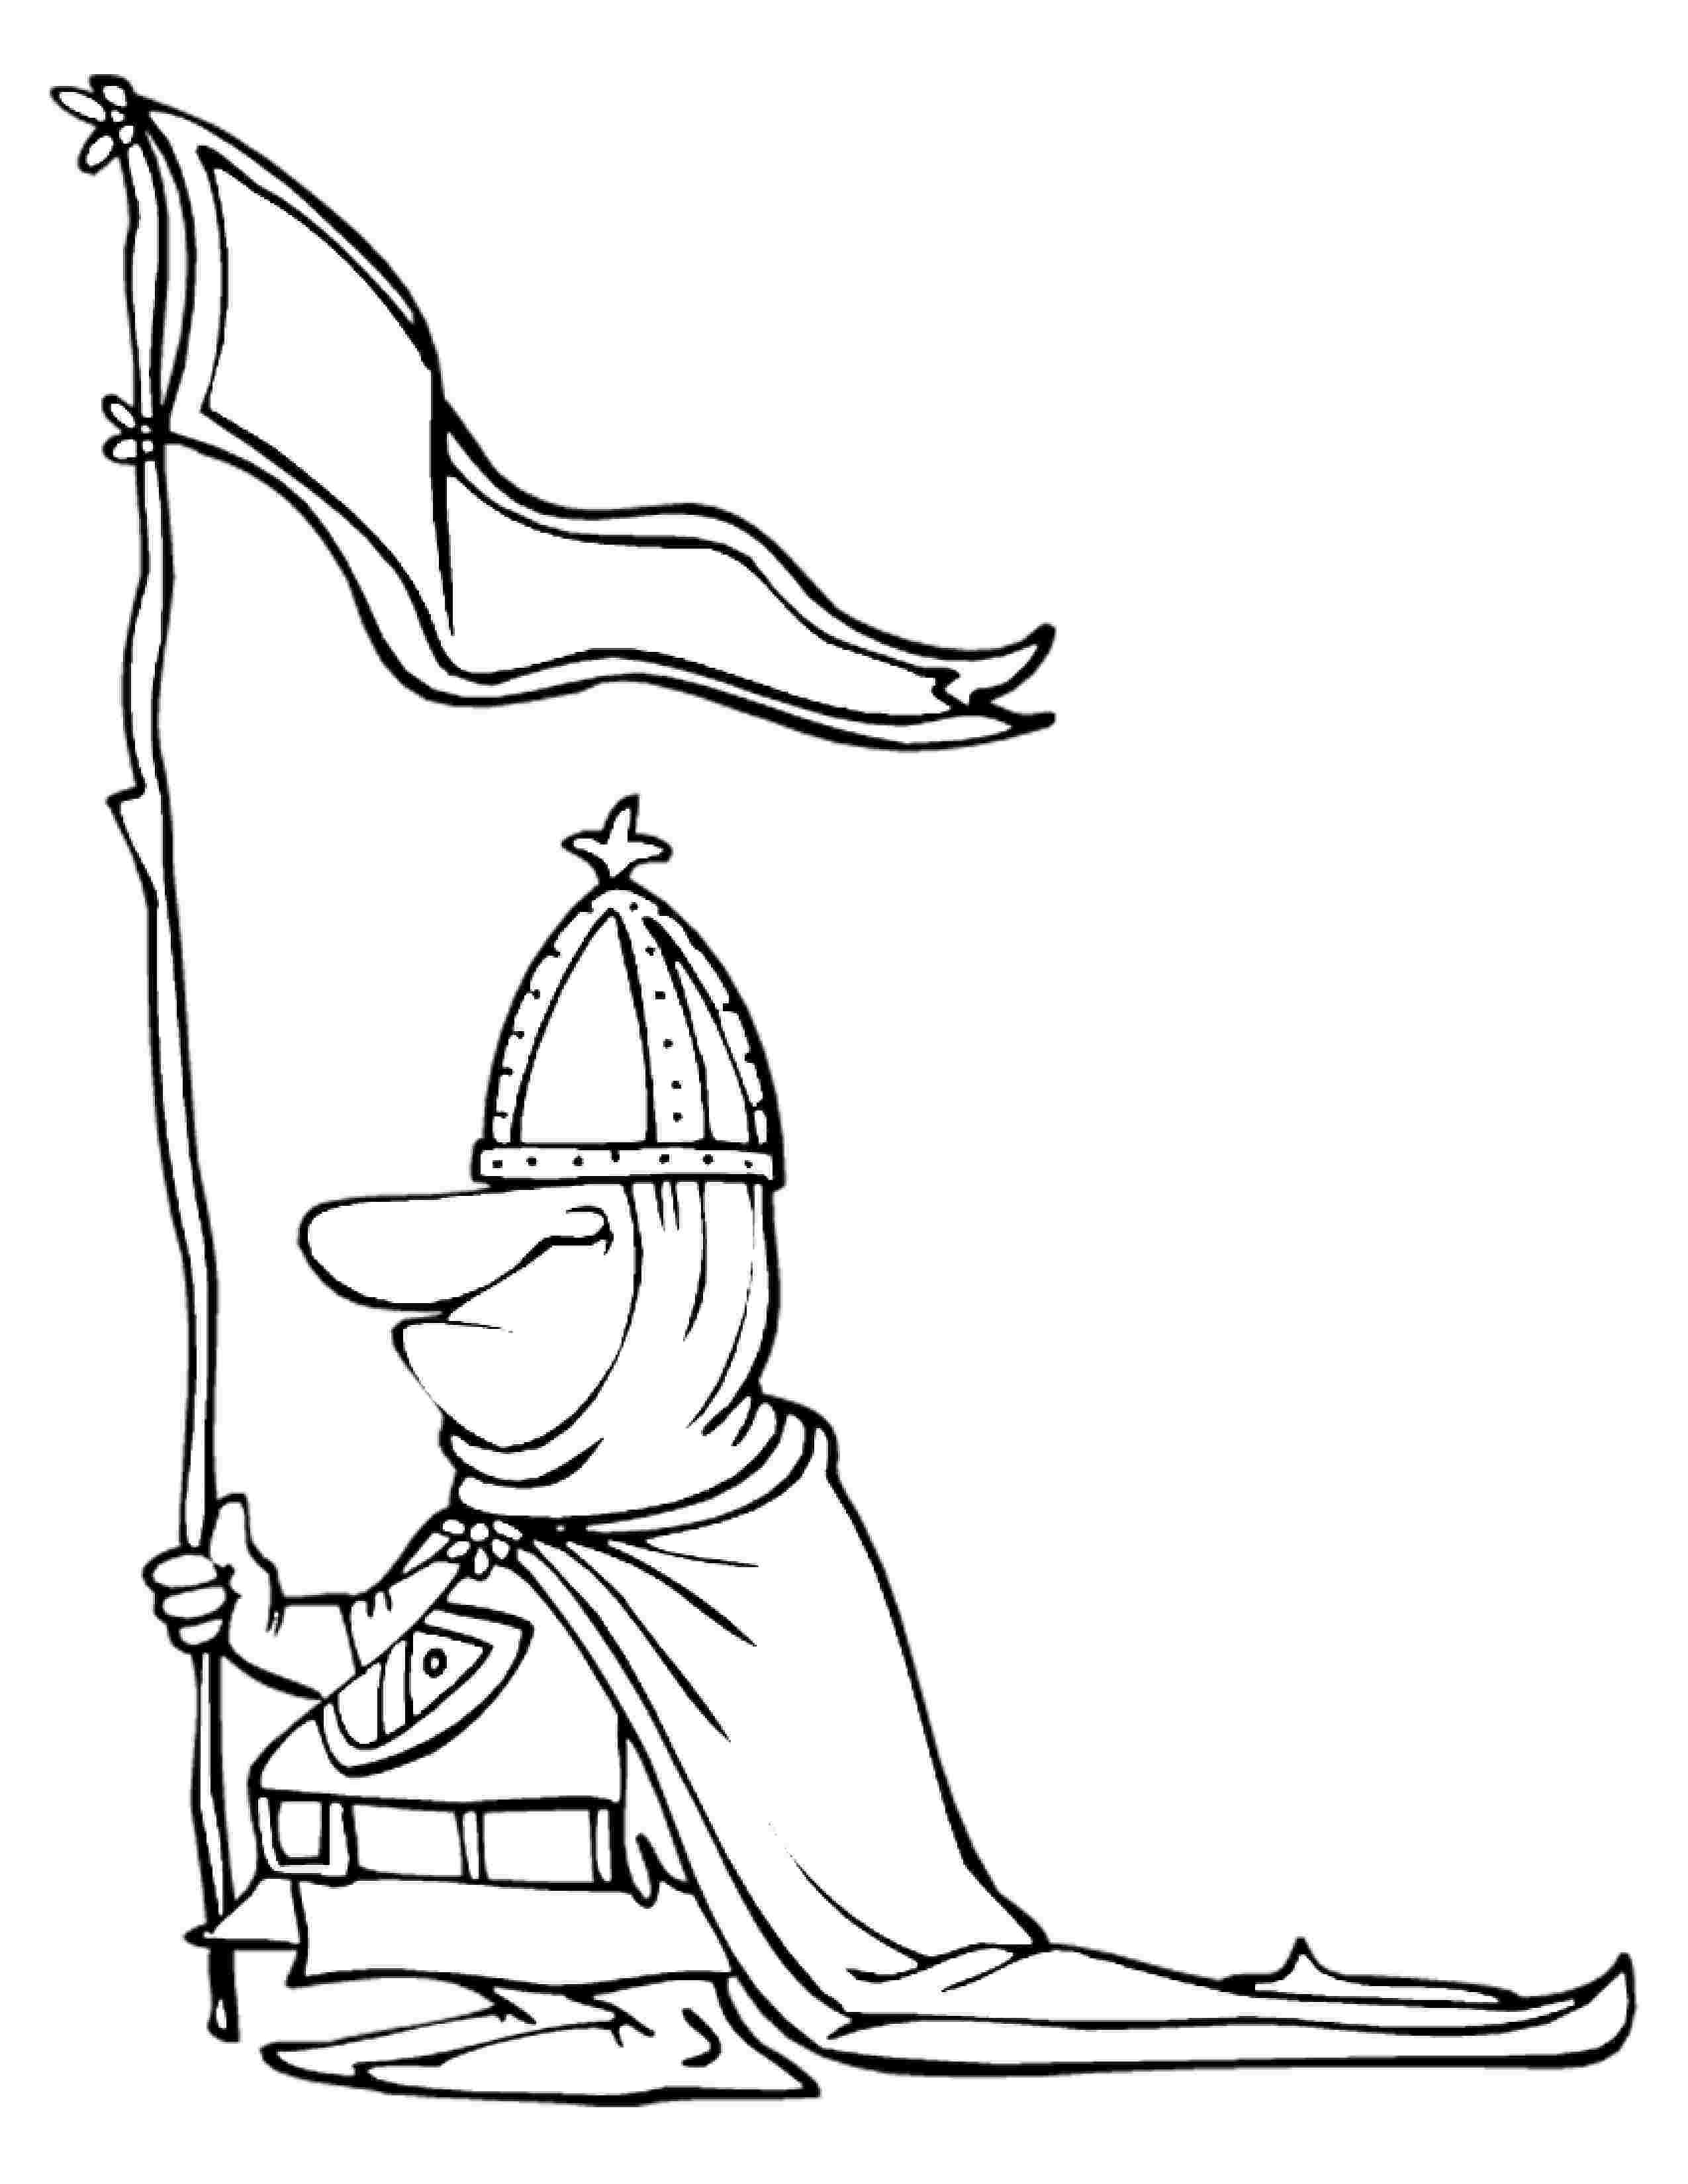 fairy tale coloring pages free fairy tale books coloring pages tale free coloring fairy pages